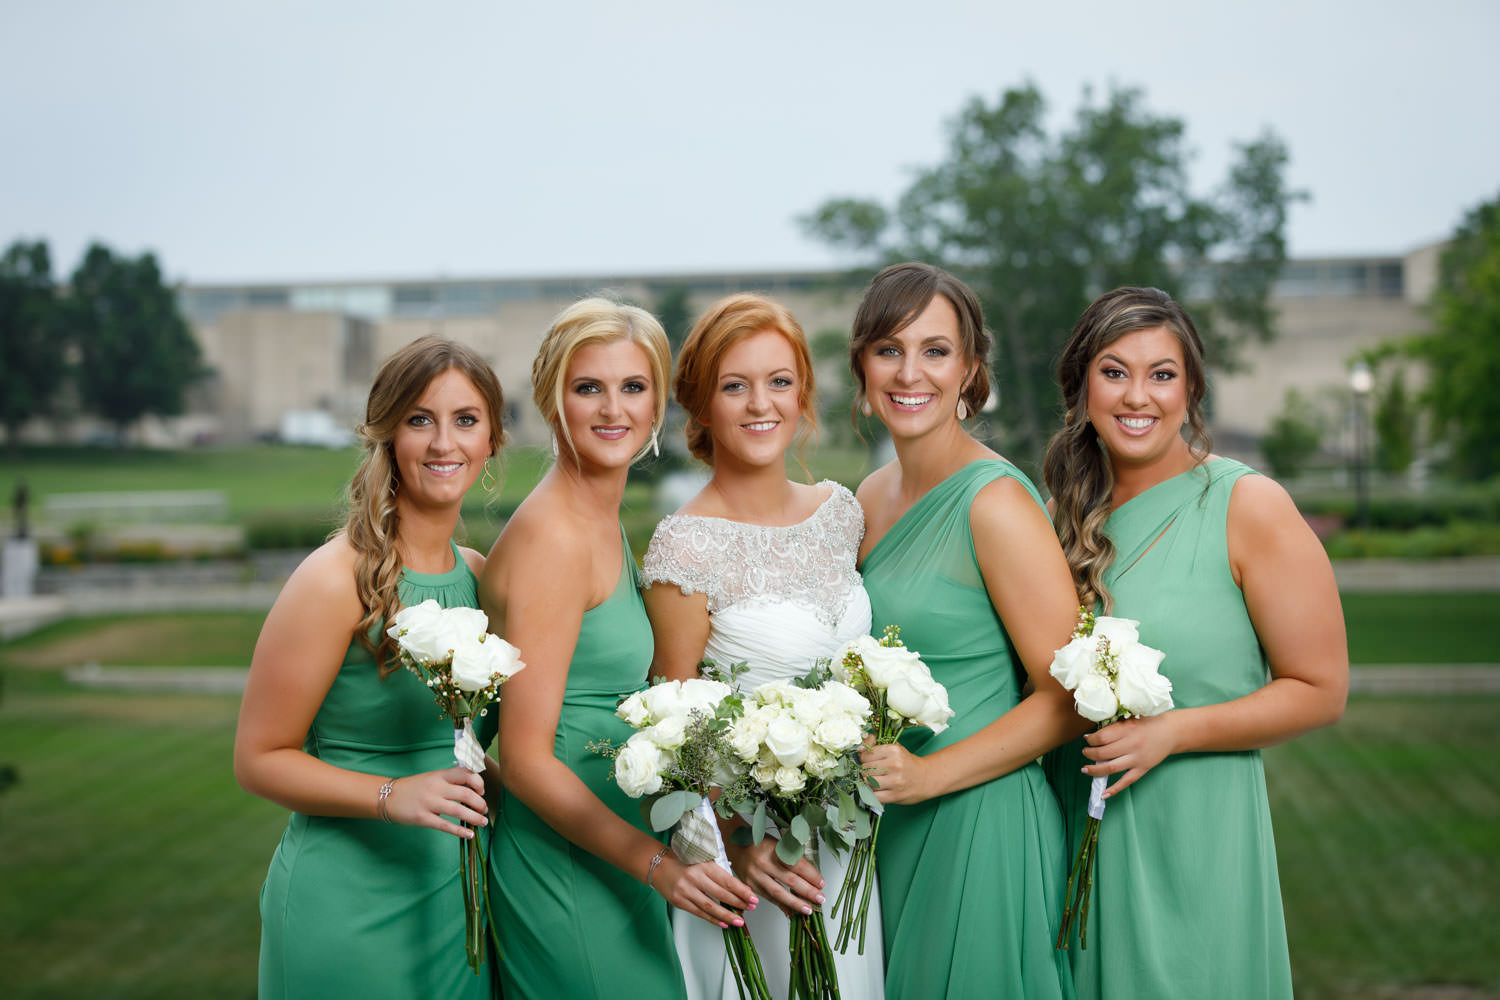 Bride and Bridesmaids on Umass Amherst Campus in background